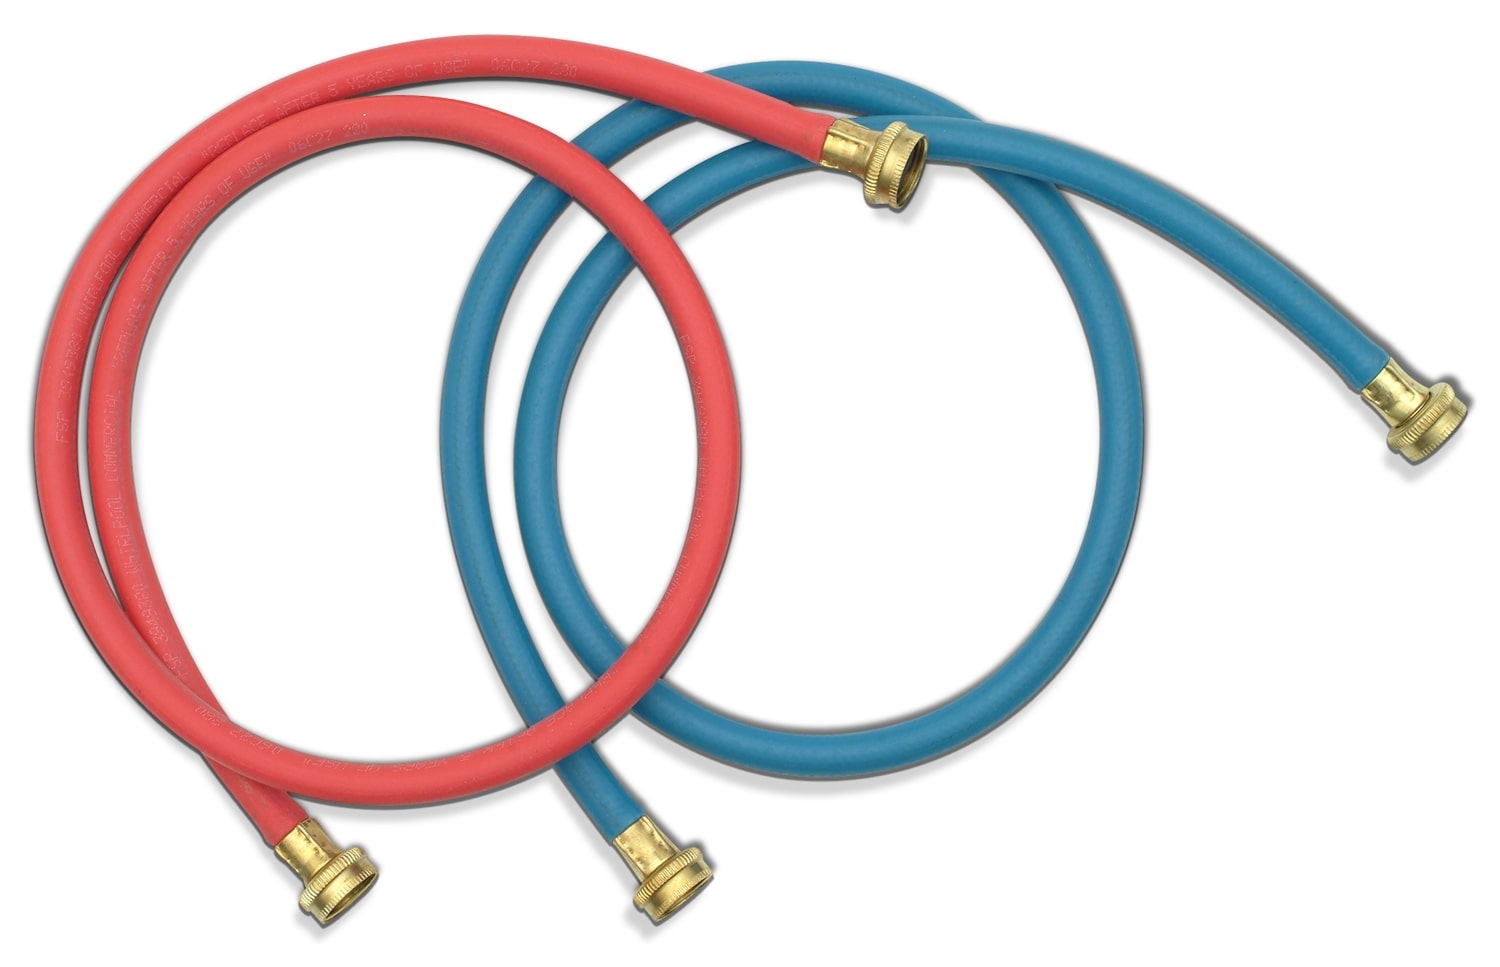 Washers and Dryers - Whirlpool Washer Hoses 8212545RP